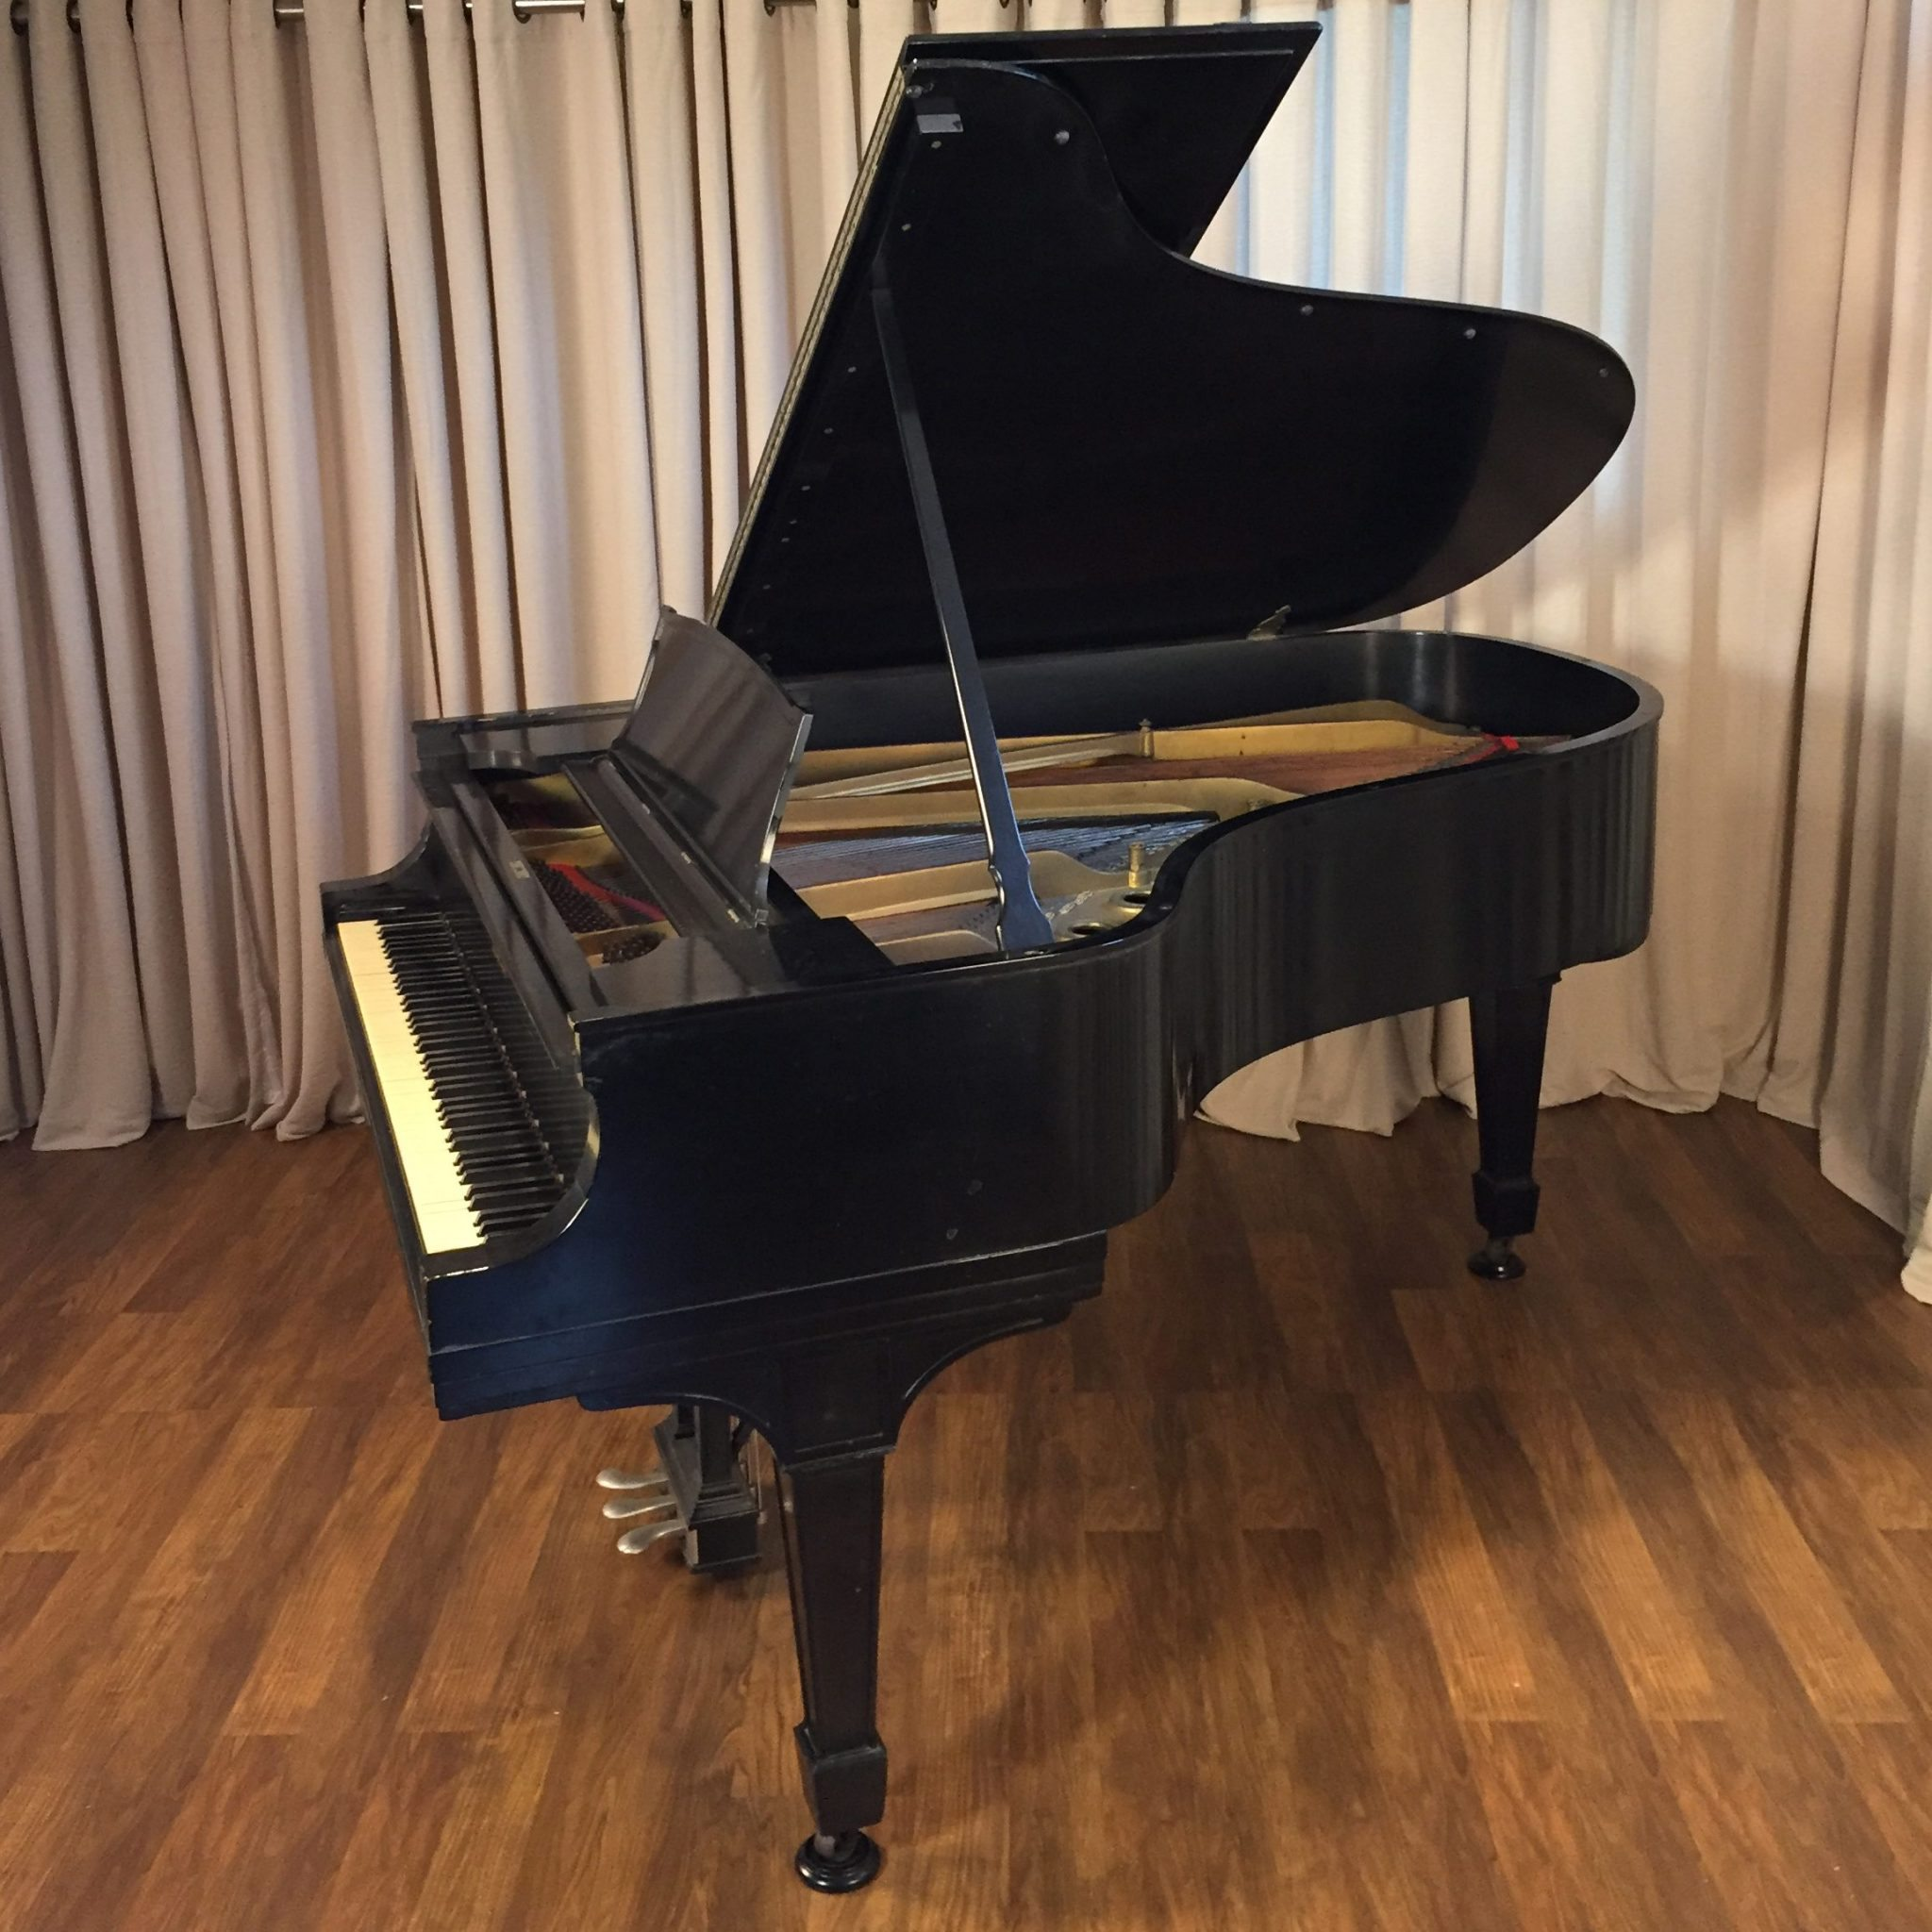 1916 Steinway model A3 Grand Piano in Ebony Traditional Style